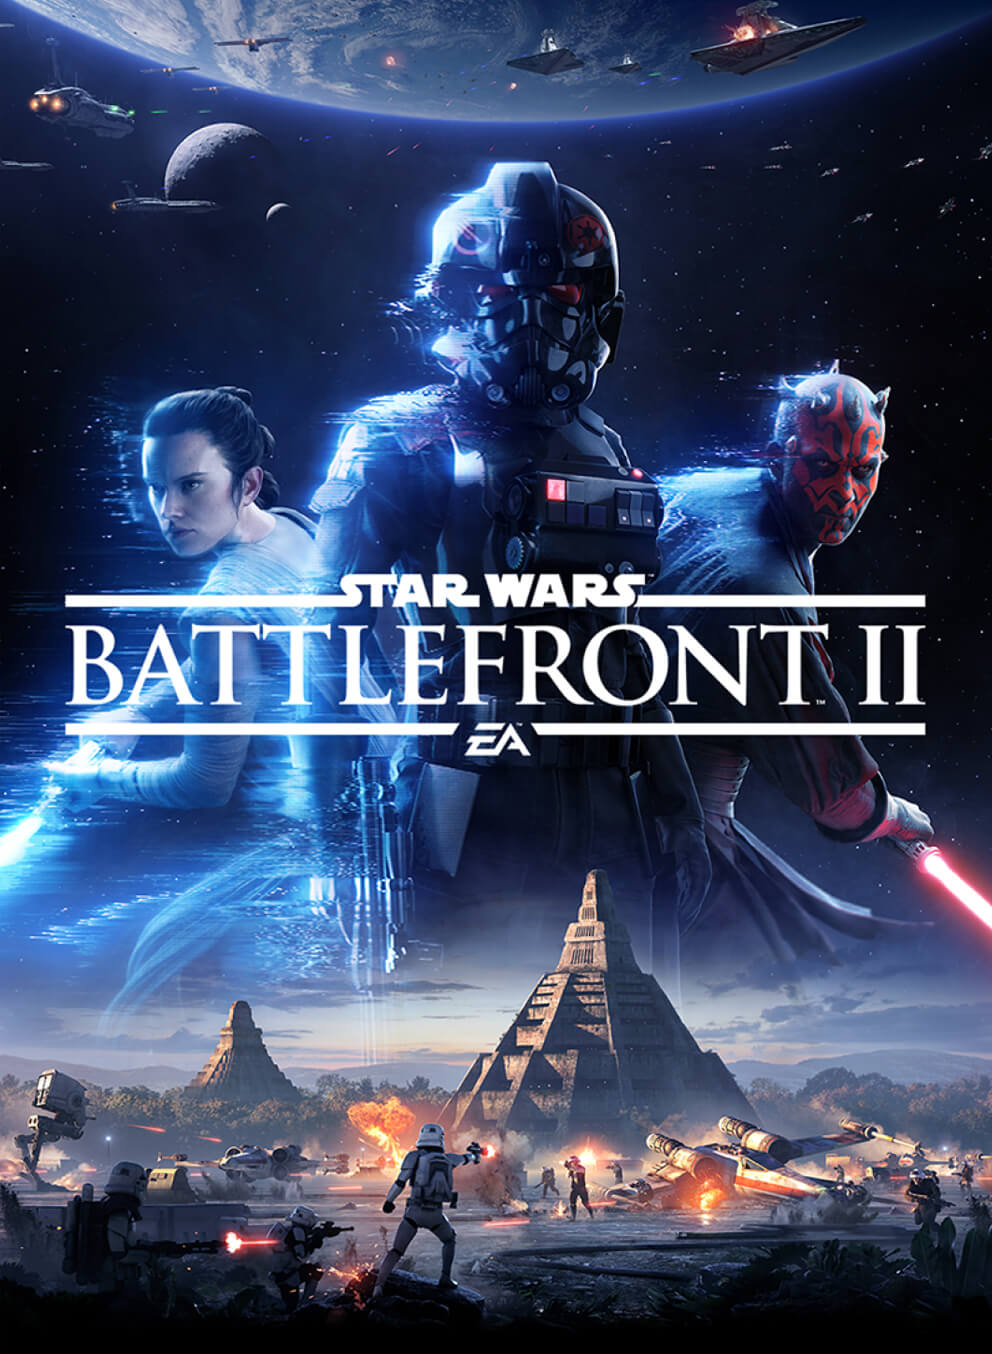 Star Wars Battlefront 2 (2017) Key RU / CIS ONLY